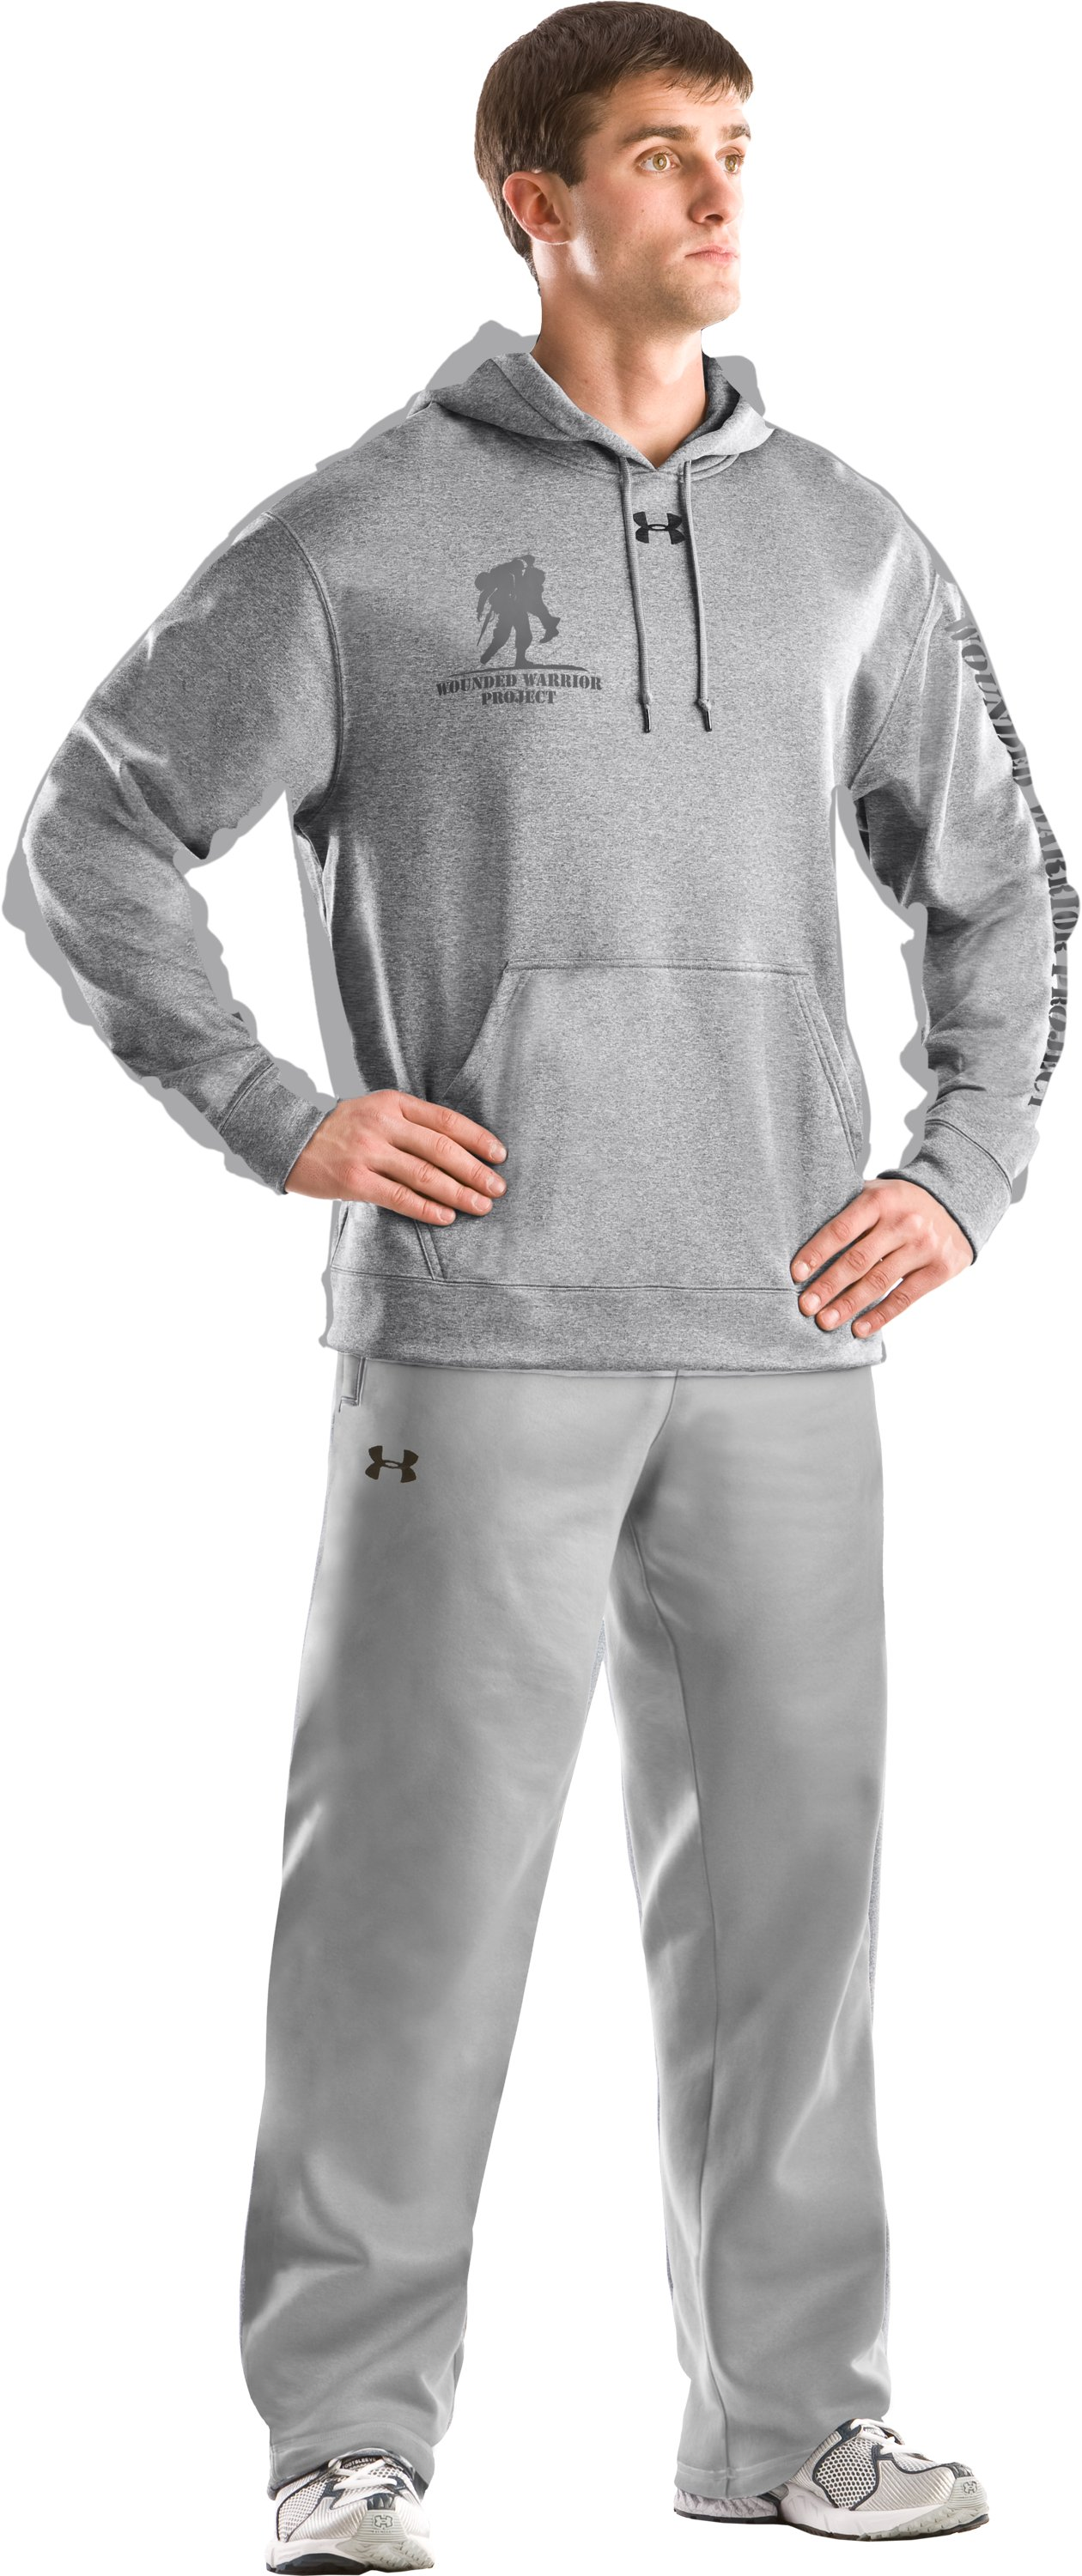 Men's WWP Hoodie, Medium Gray Heather, Front